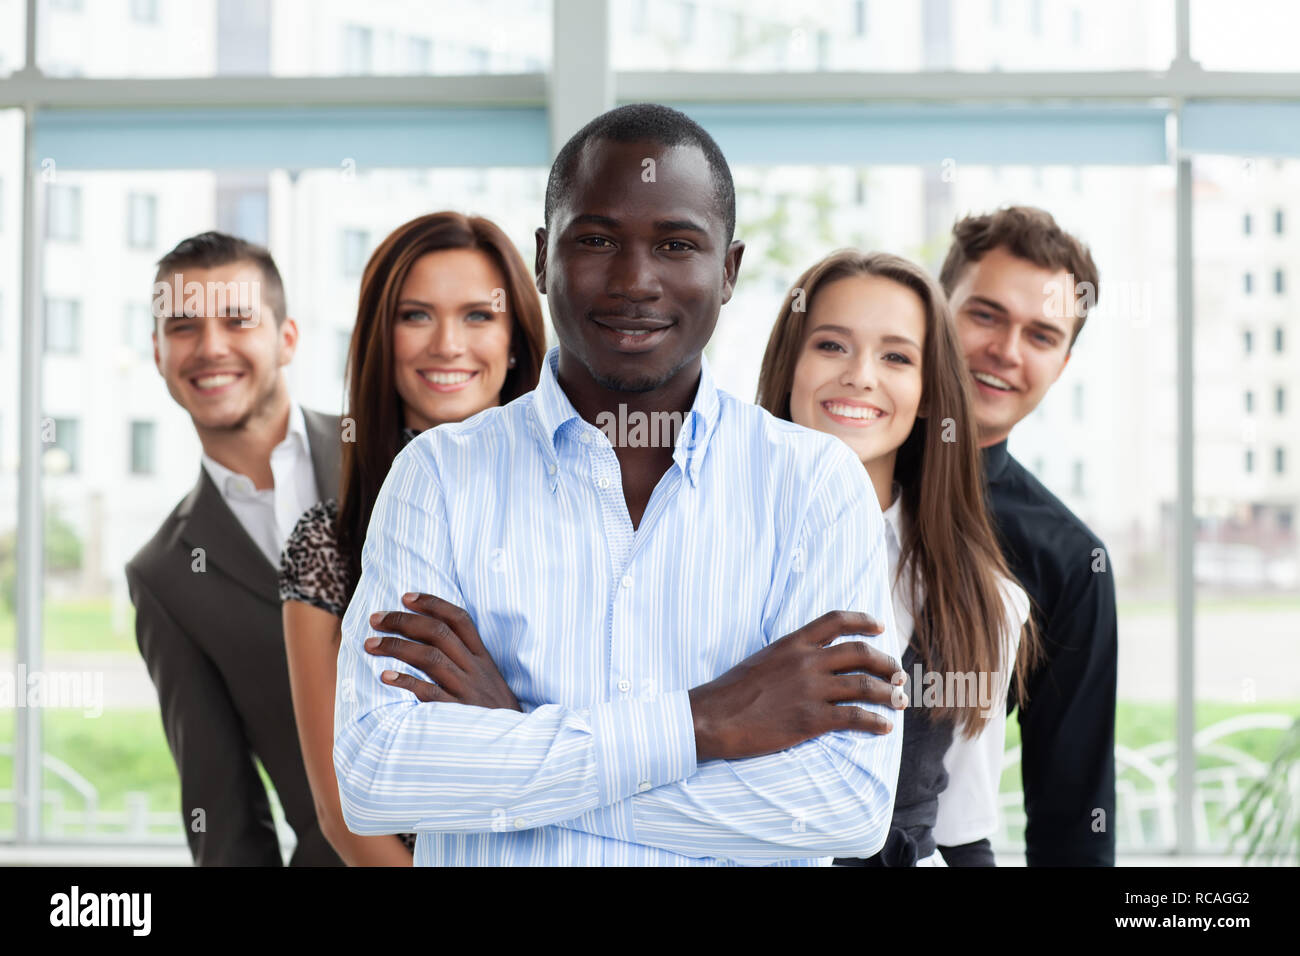 Group of friendly businesspeople with male leader in front. - Stock Image